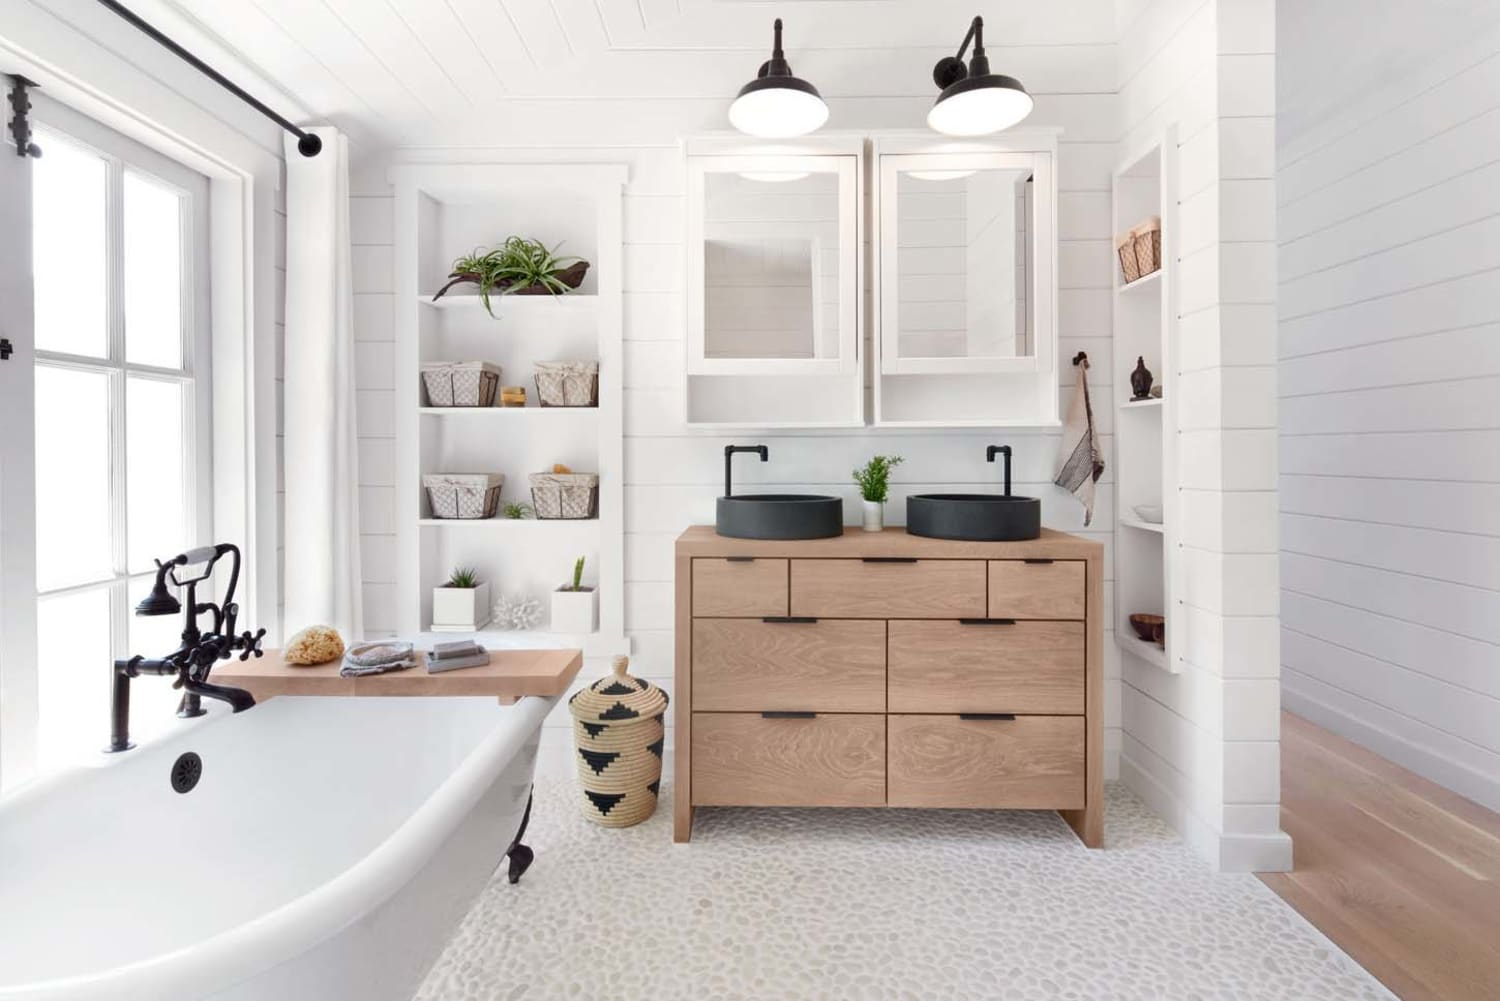 10 Overdone Bathroom Trends, According to Real Estate Agents